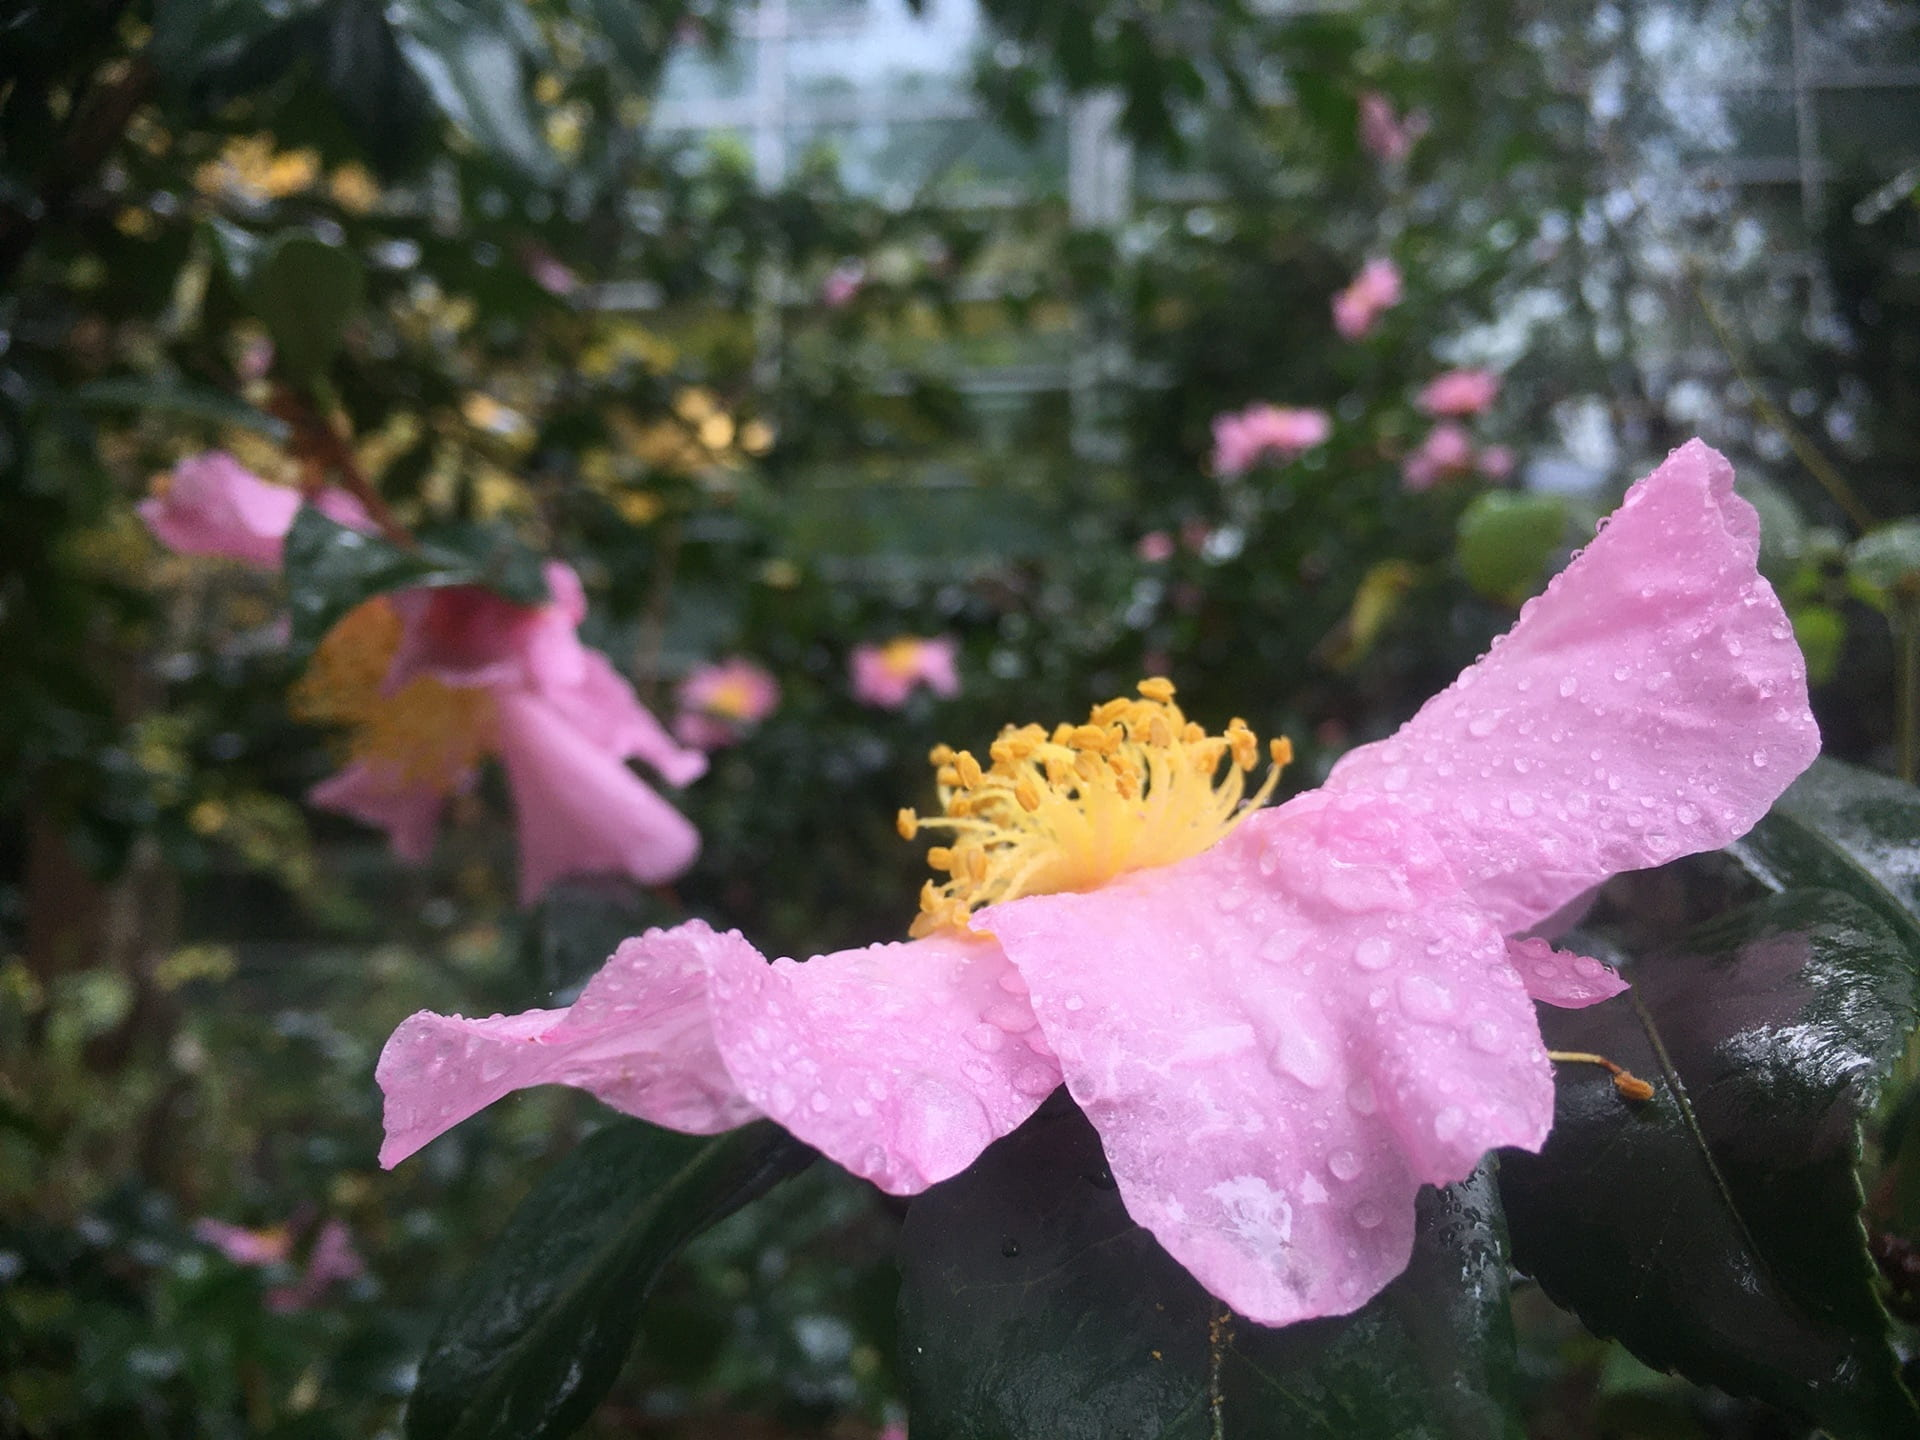 Raindrop covered flowers of Camellia sasanqua light up a gray fall day.